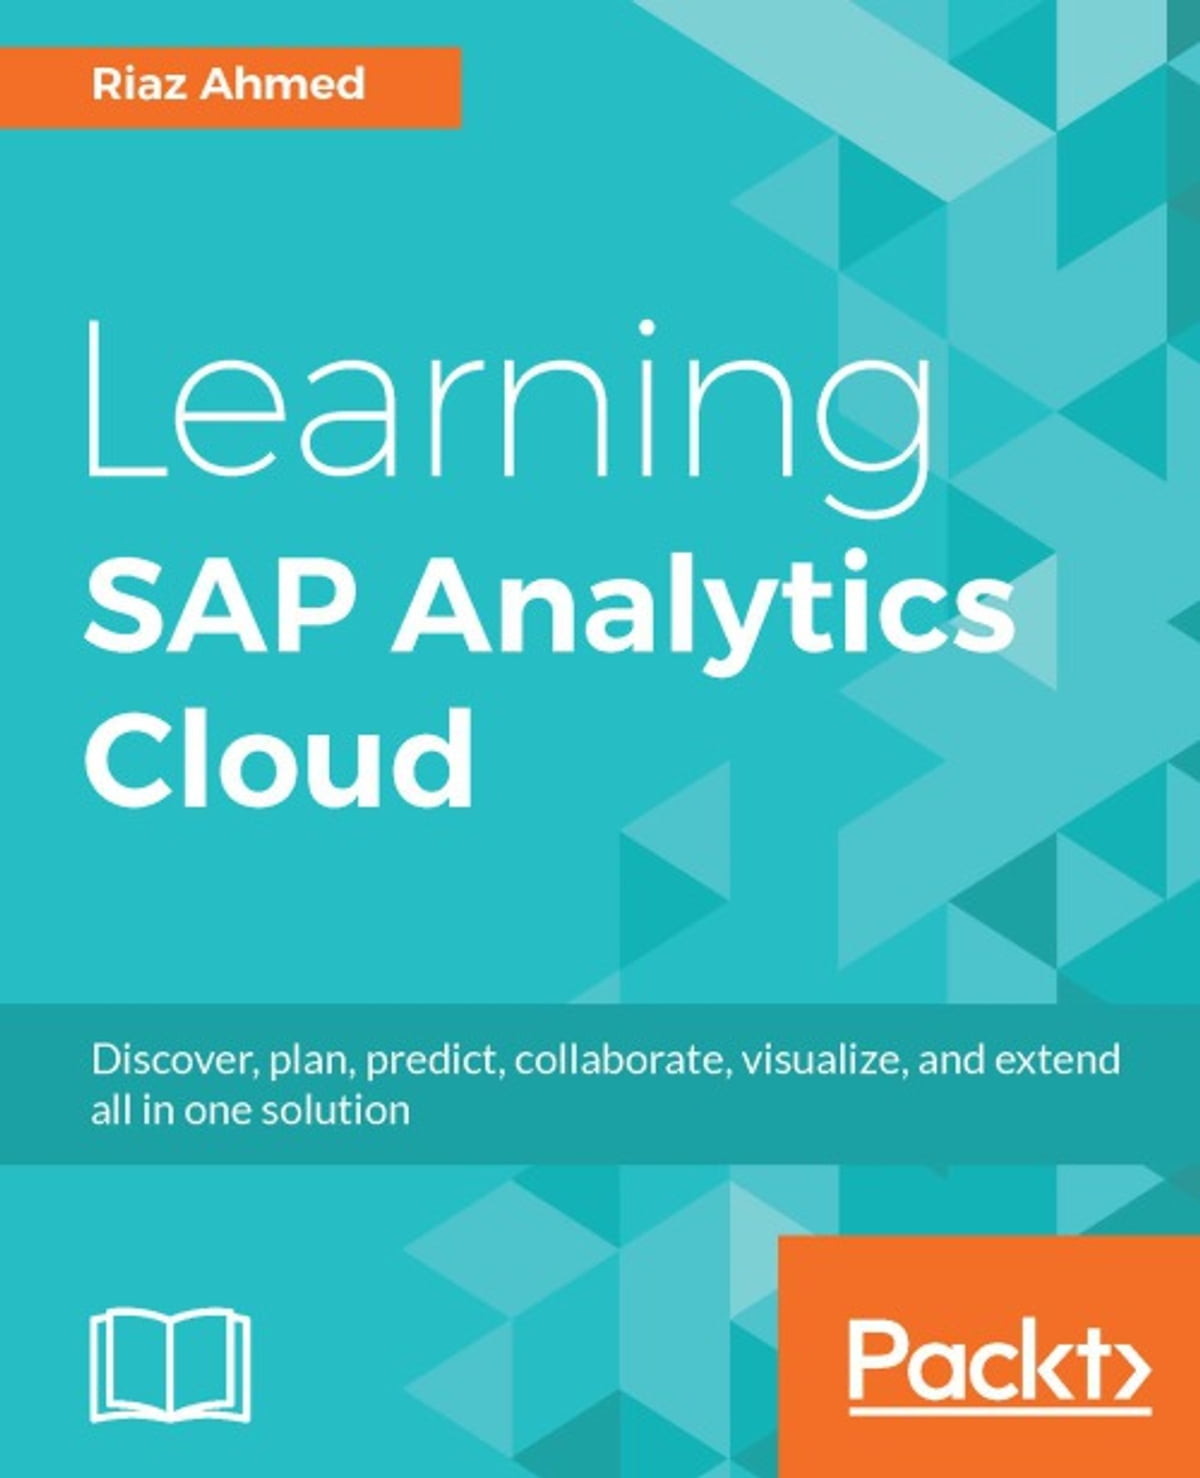 Are there any free PDF books to learn SAP? - Quora